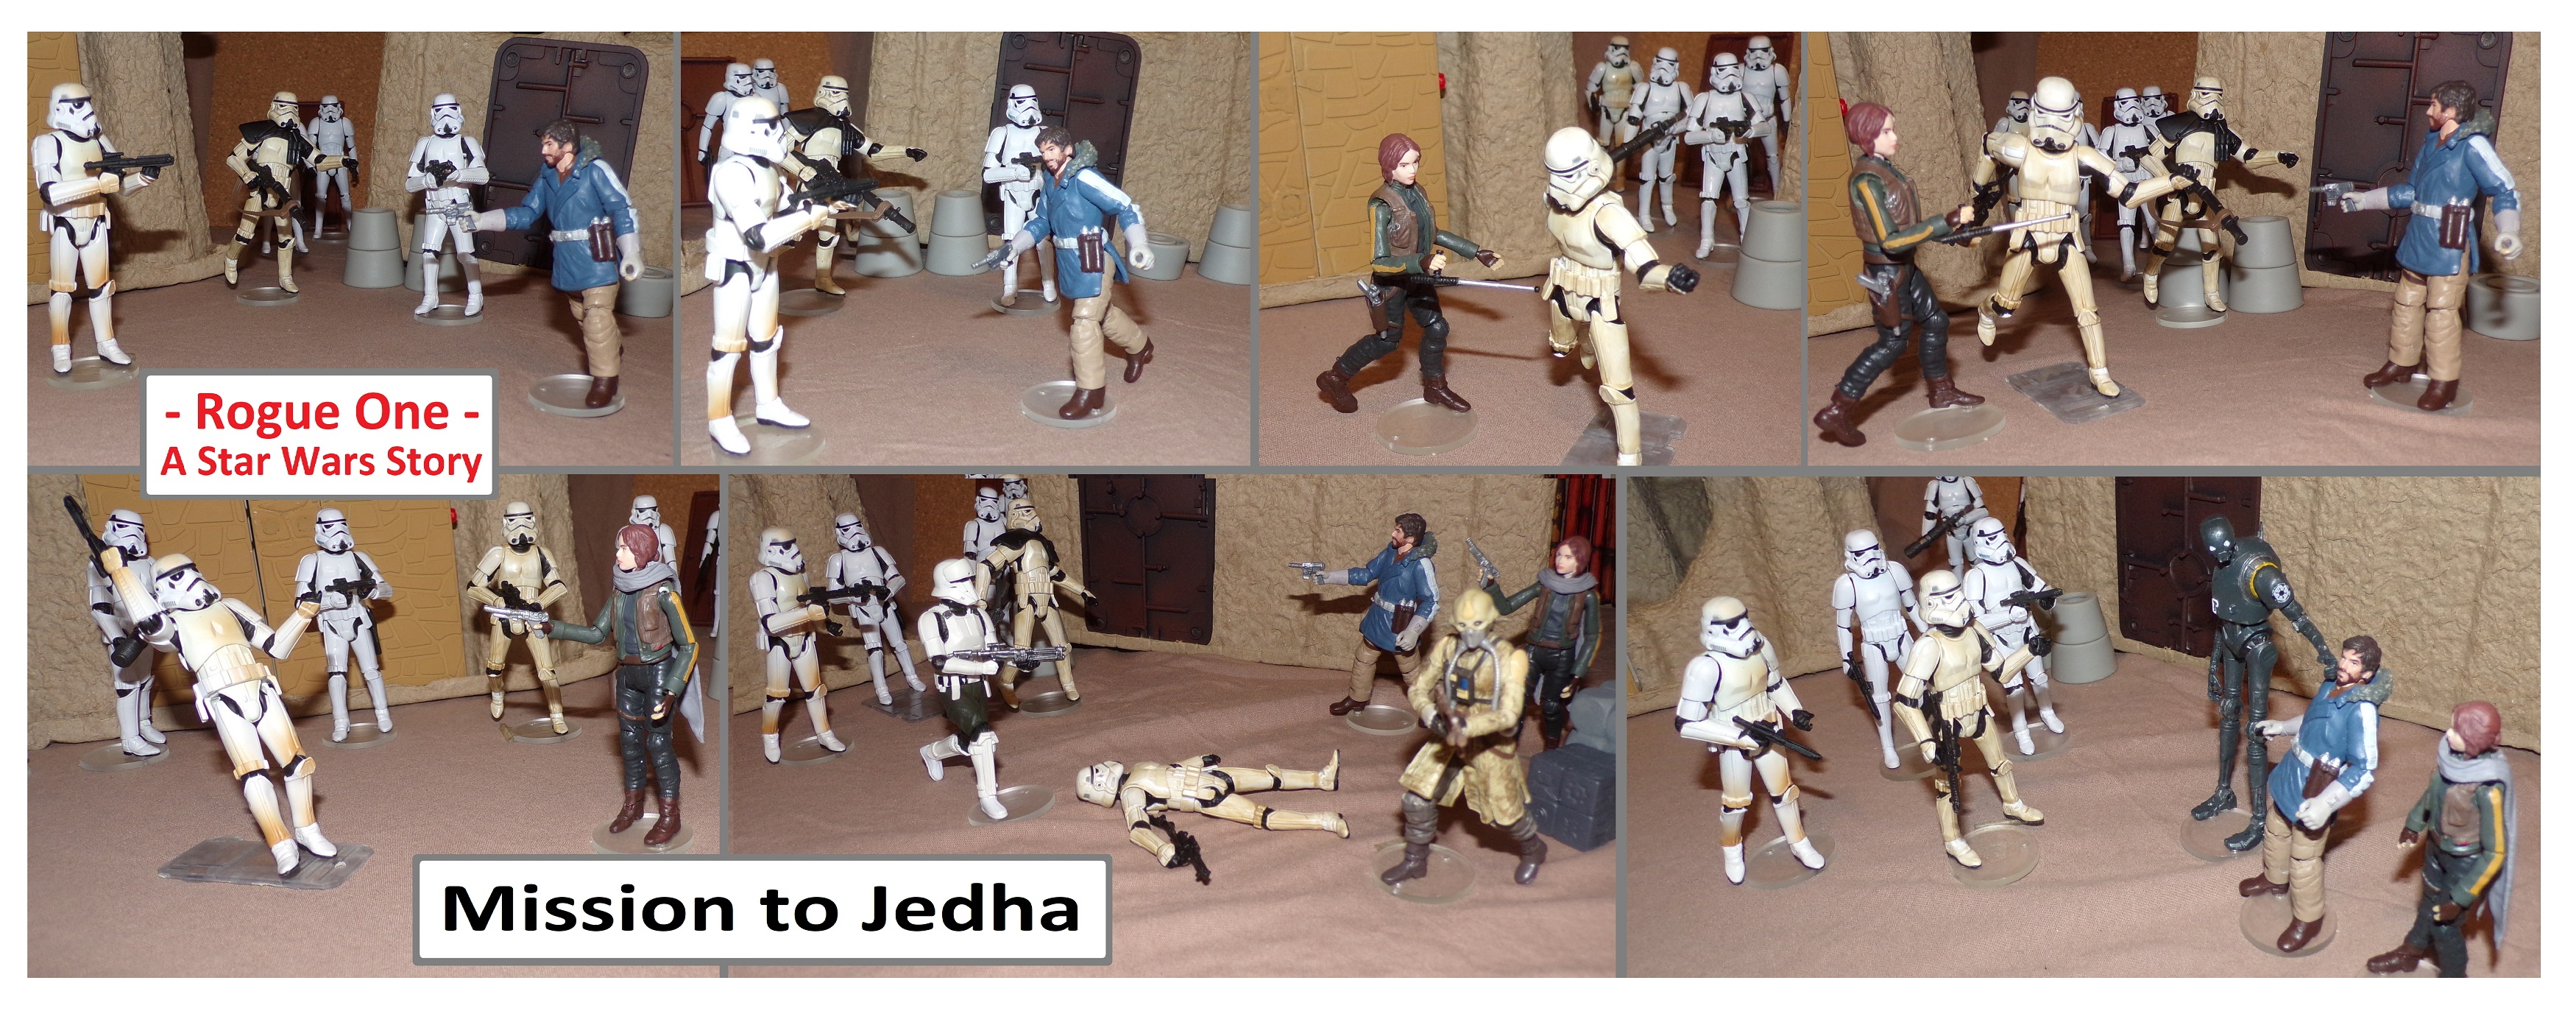 RO Mission to Jedha City 1.01 (3500).jpg